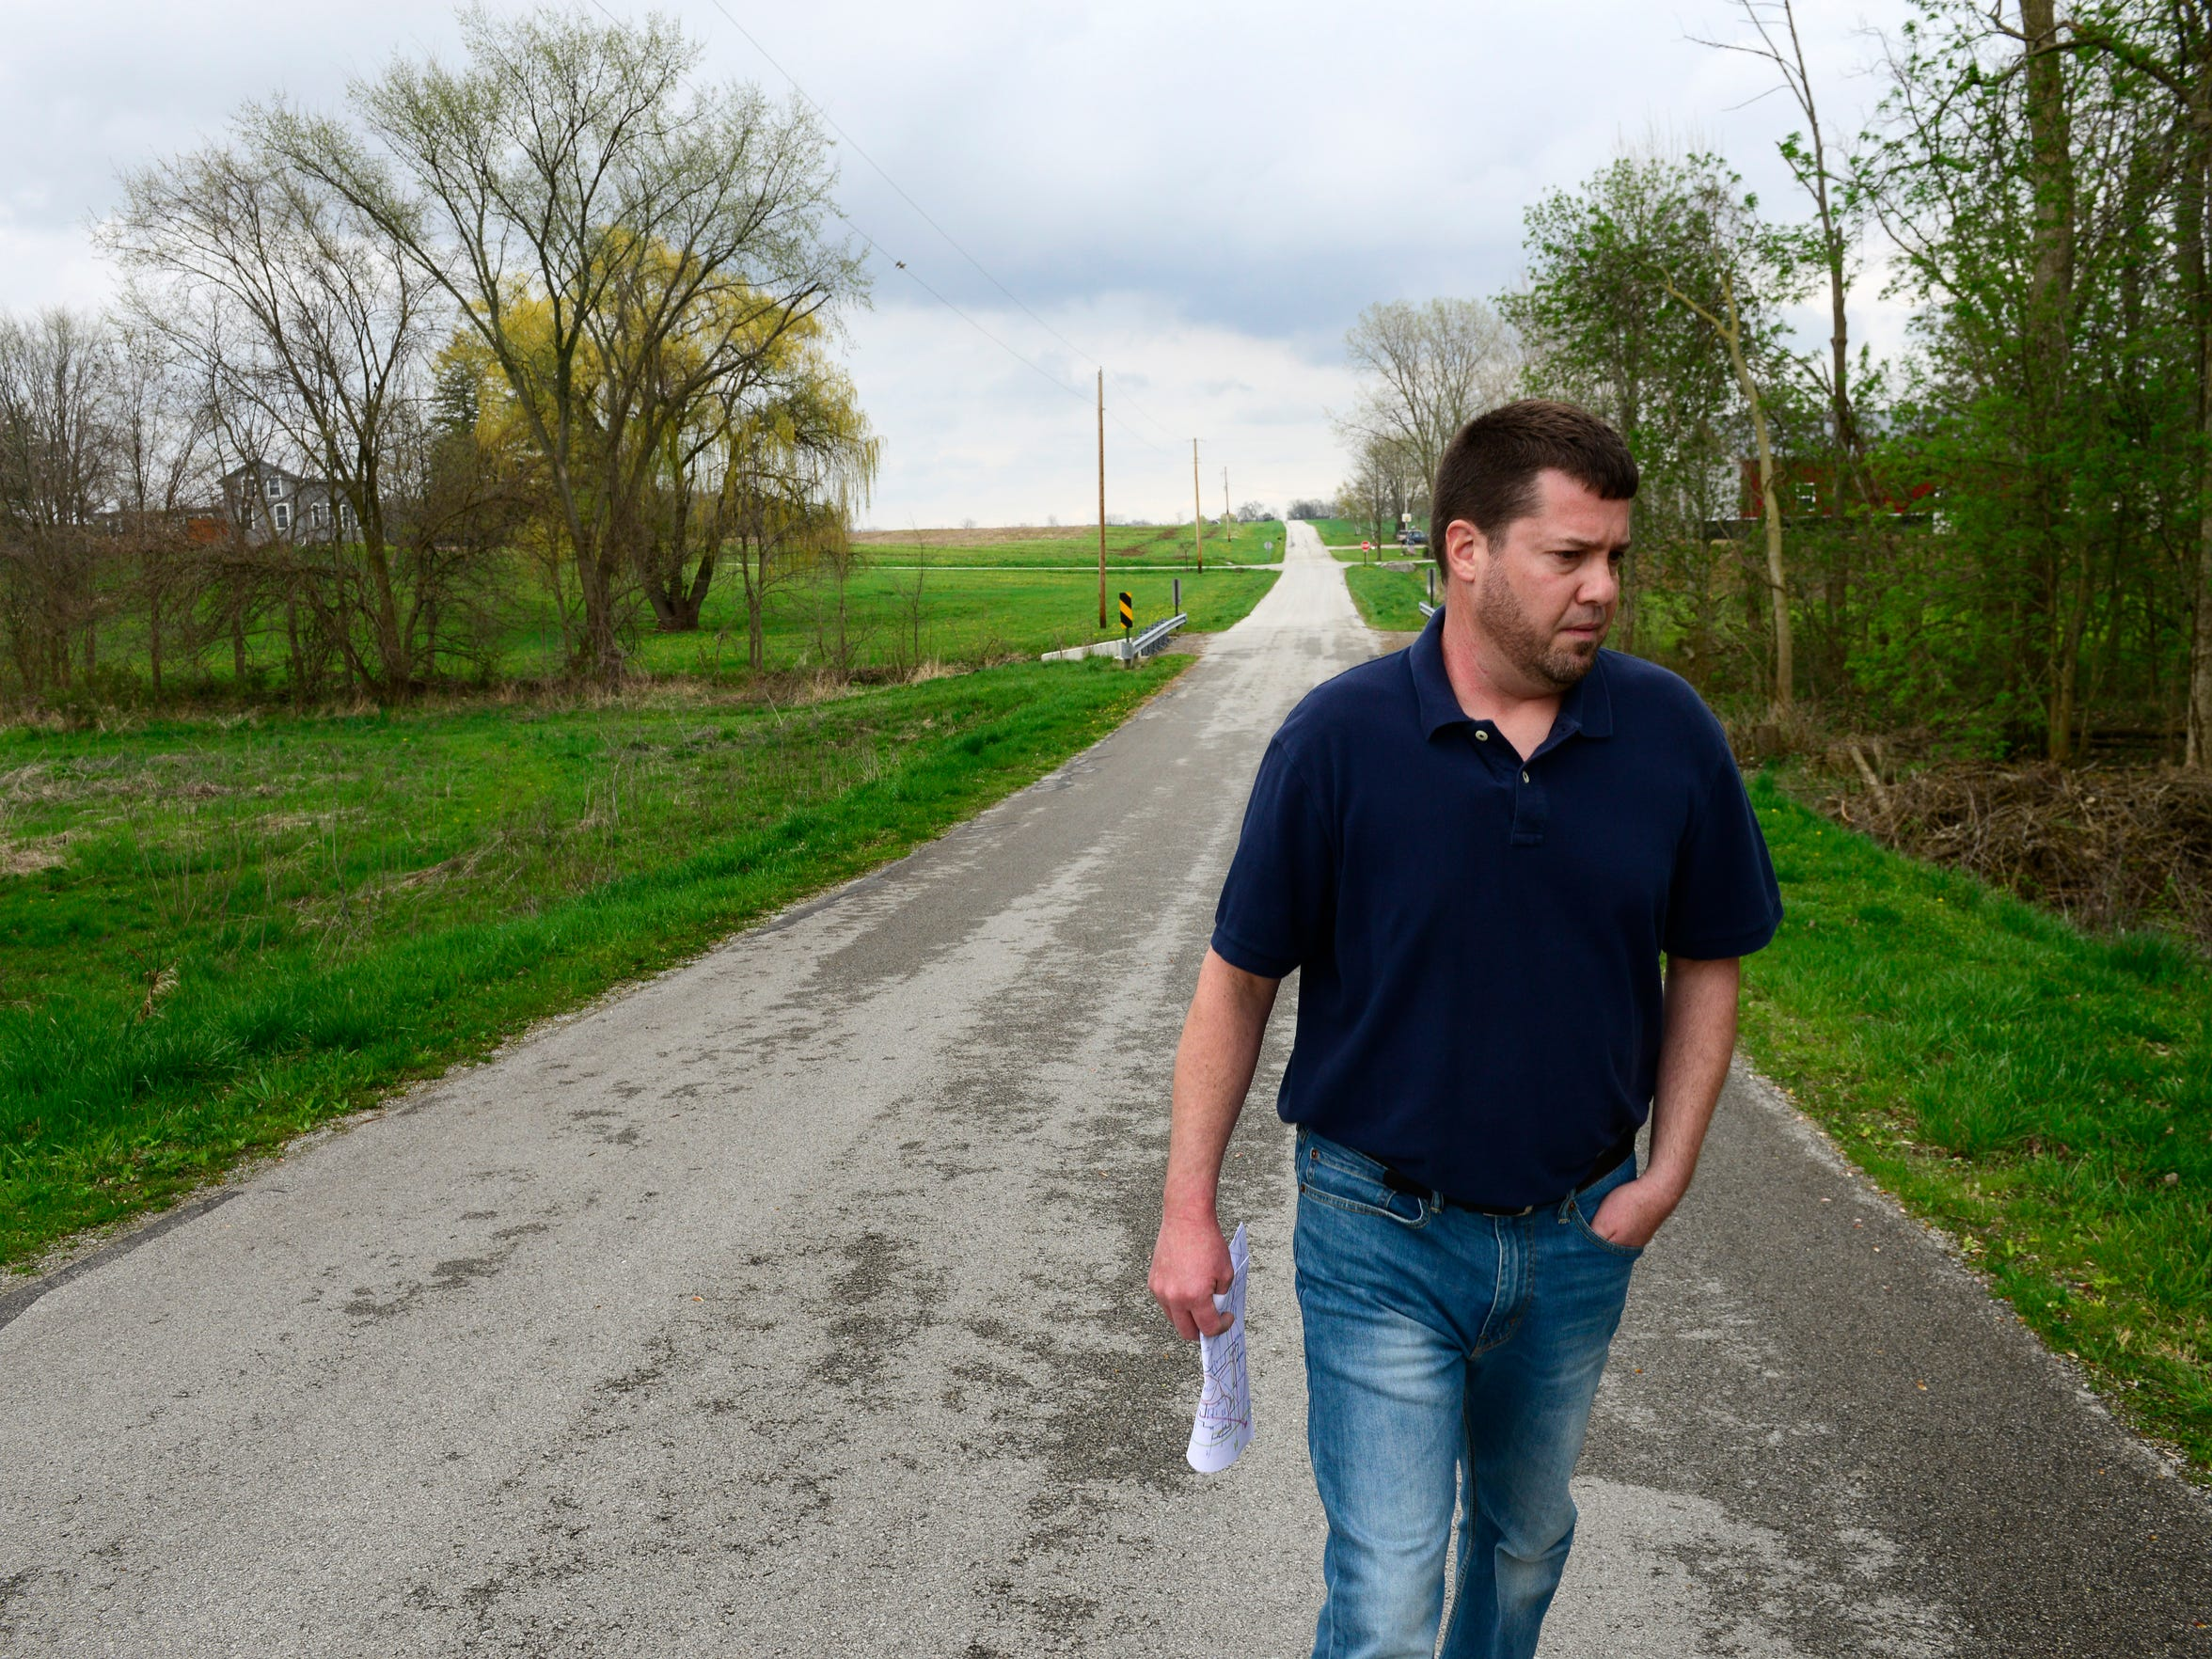 Chris Zeman, who lives north of Republic, has been one of the most vocal critics of a proposed APEX Clean Energy wind farm project in Seneca County, contending that the turbines would bring unwanted noise, light flickers and construction activity near his home.